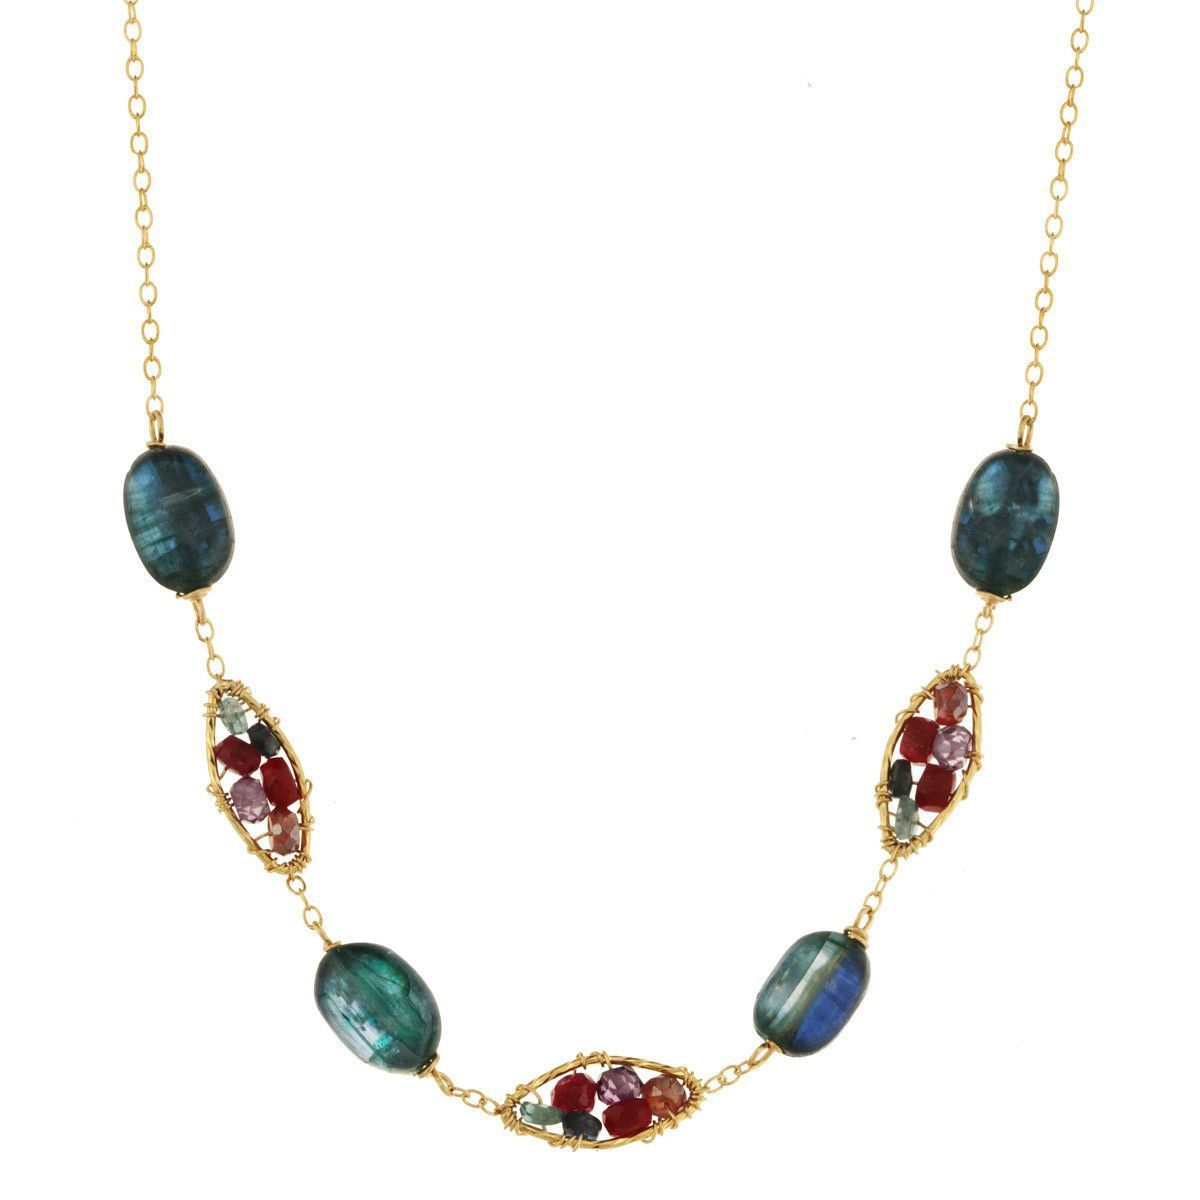 Labradorite and Ruby Necklace 2844 by Michelle Pressler